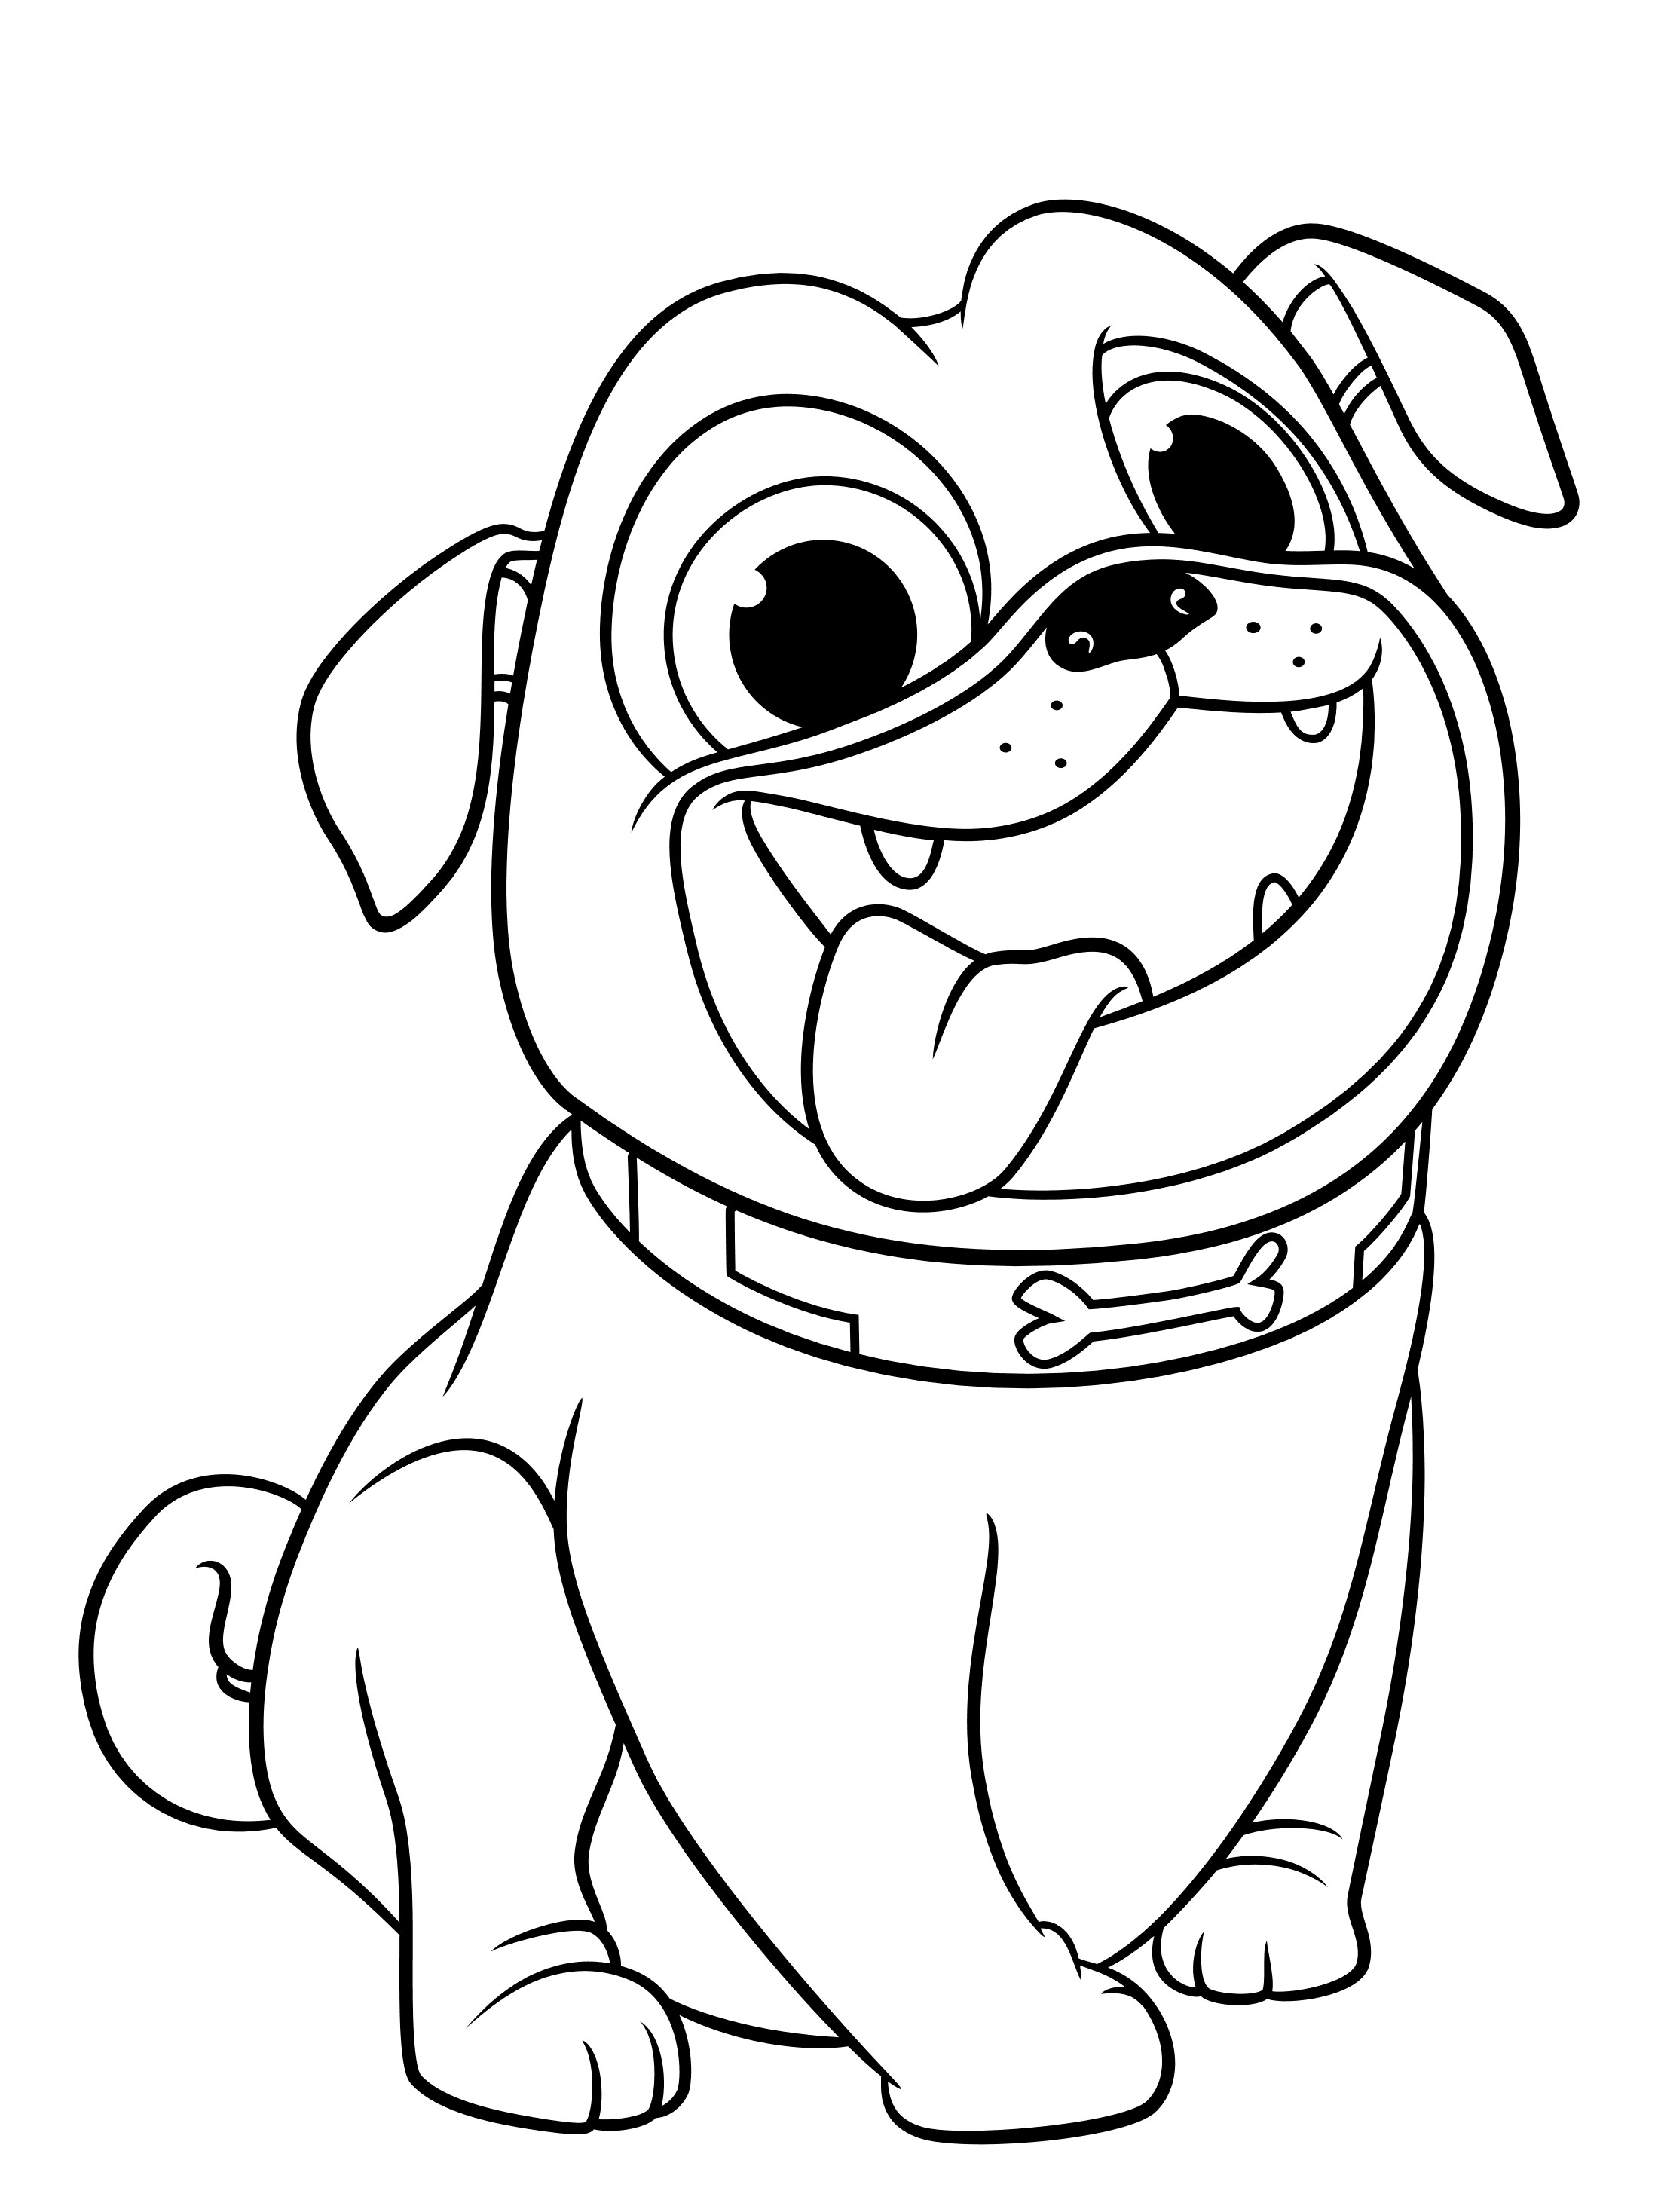 coloring cartoon dog coloring page of dog with bone free clip art coloring cartoon dog